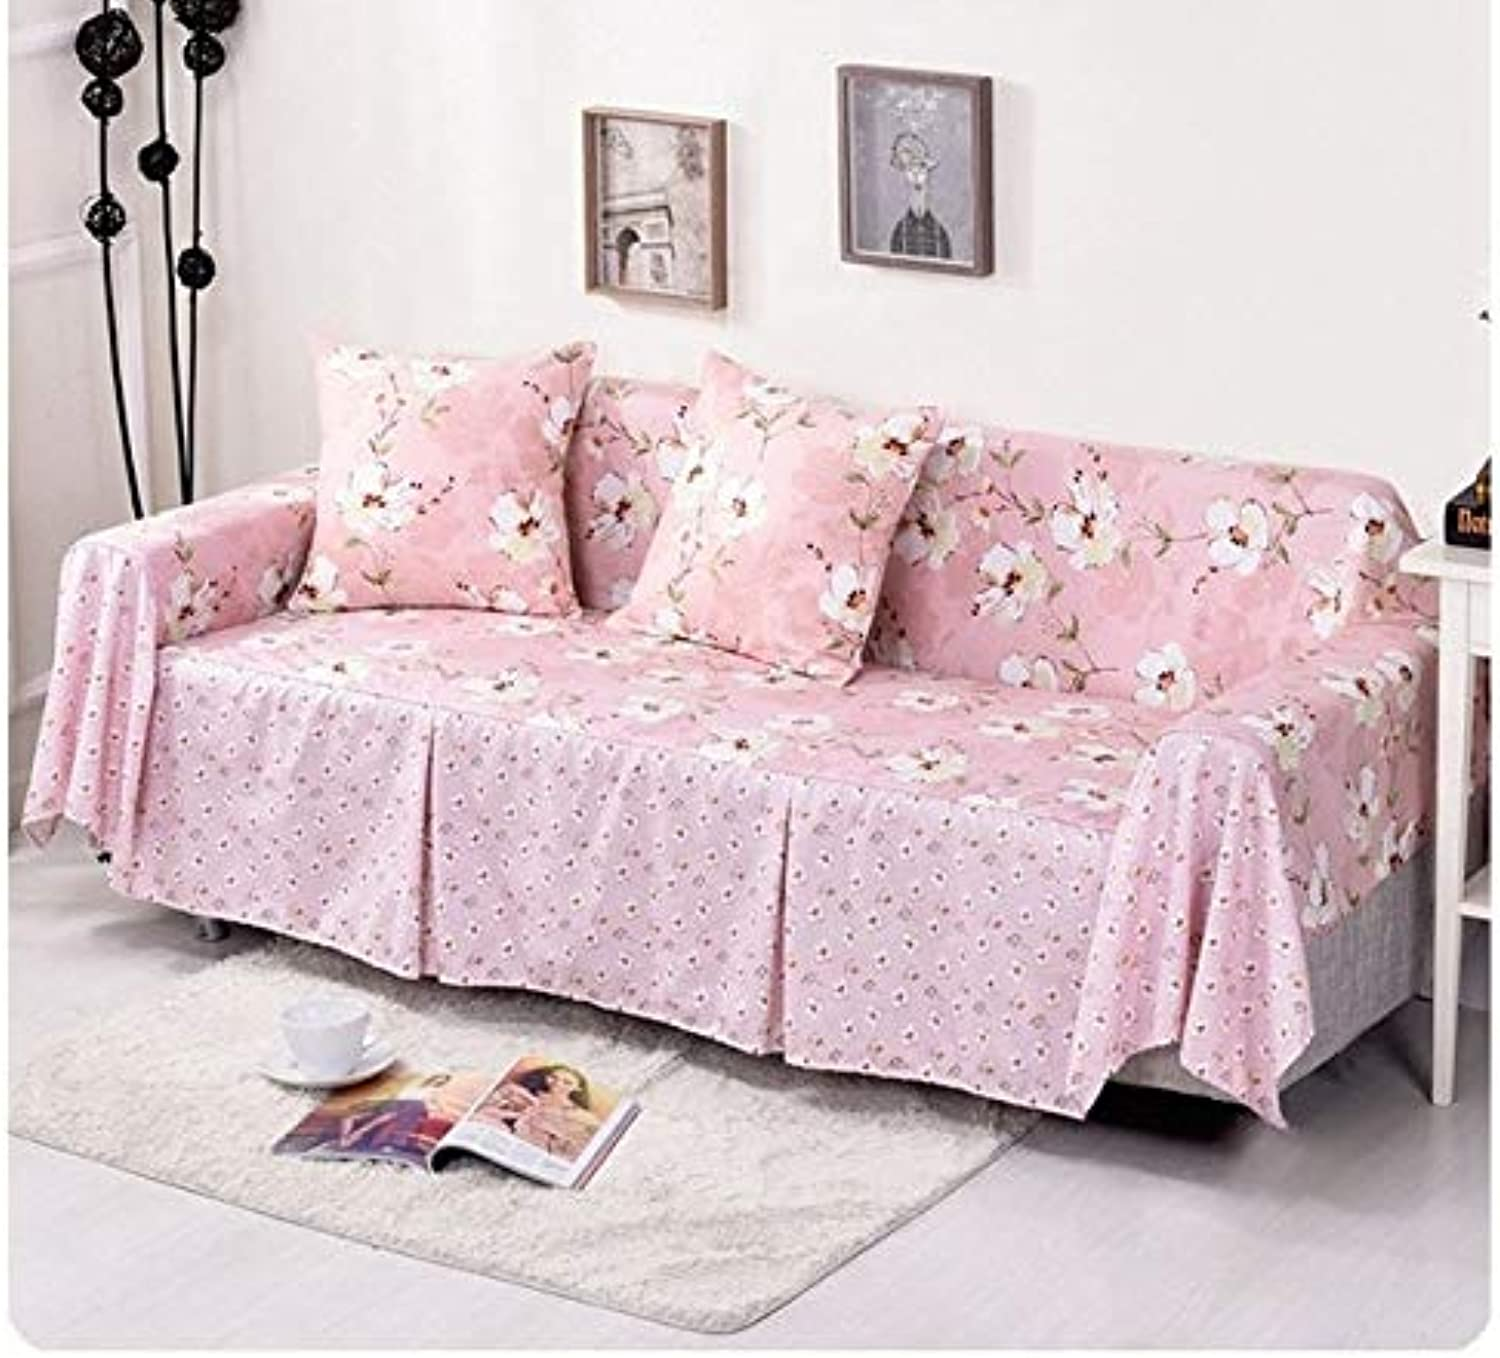 Cotton Sofa Towel Single Two Three Four-Seater Sofa Covers Slip-Resistant Plaid Couch Cover for Living Room Sofa Bed Home Decor   05, 200x200cm